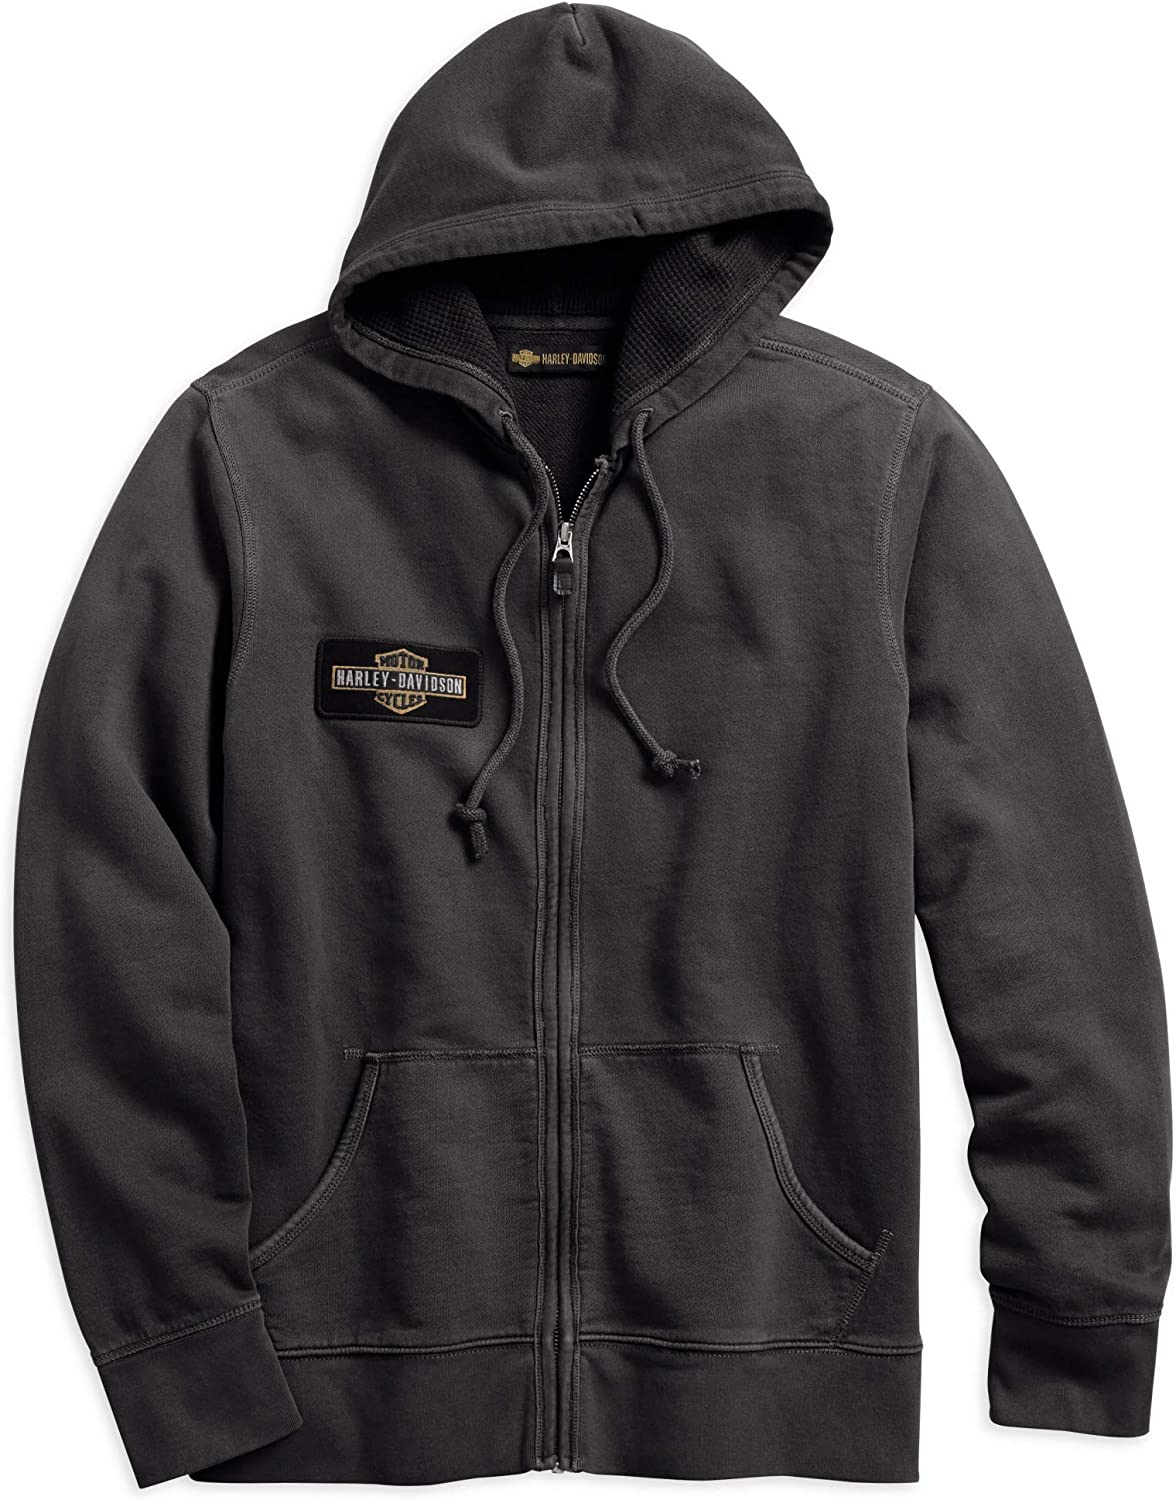 Harley Davidson Men's Eagle Logo Slim Fit Hooded Sweatshirt (Steel Grey)